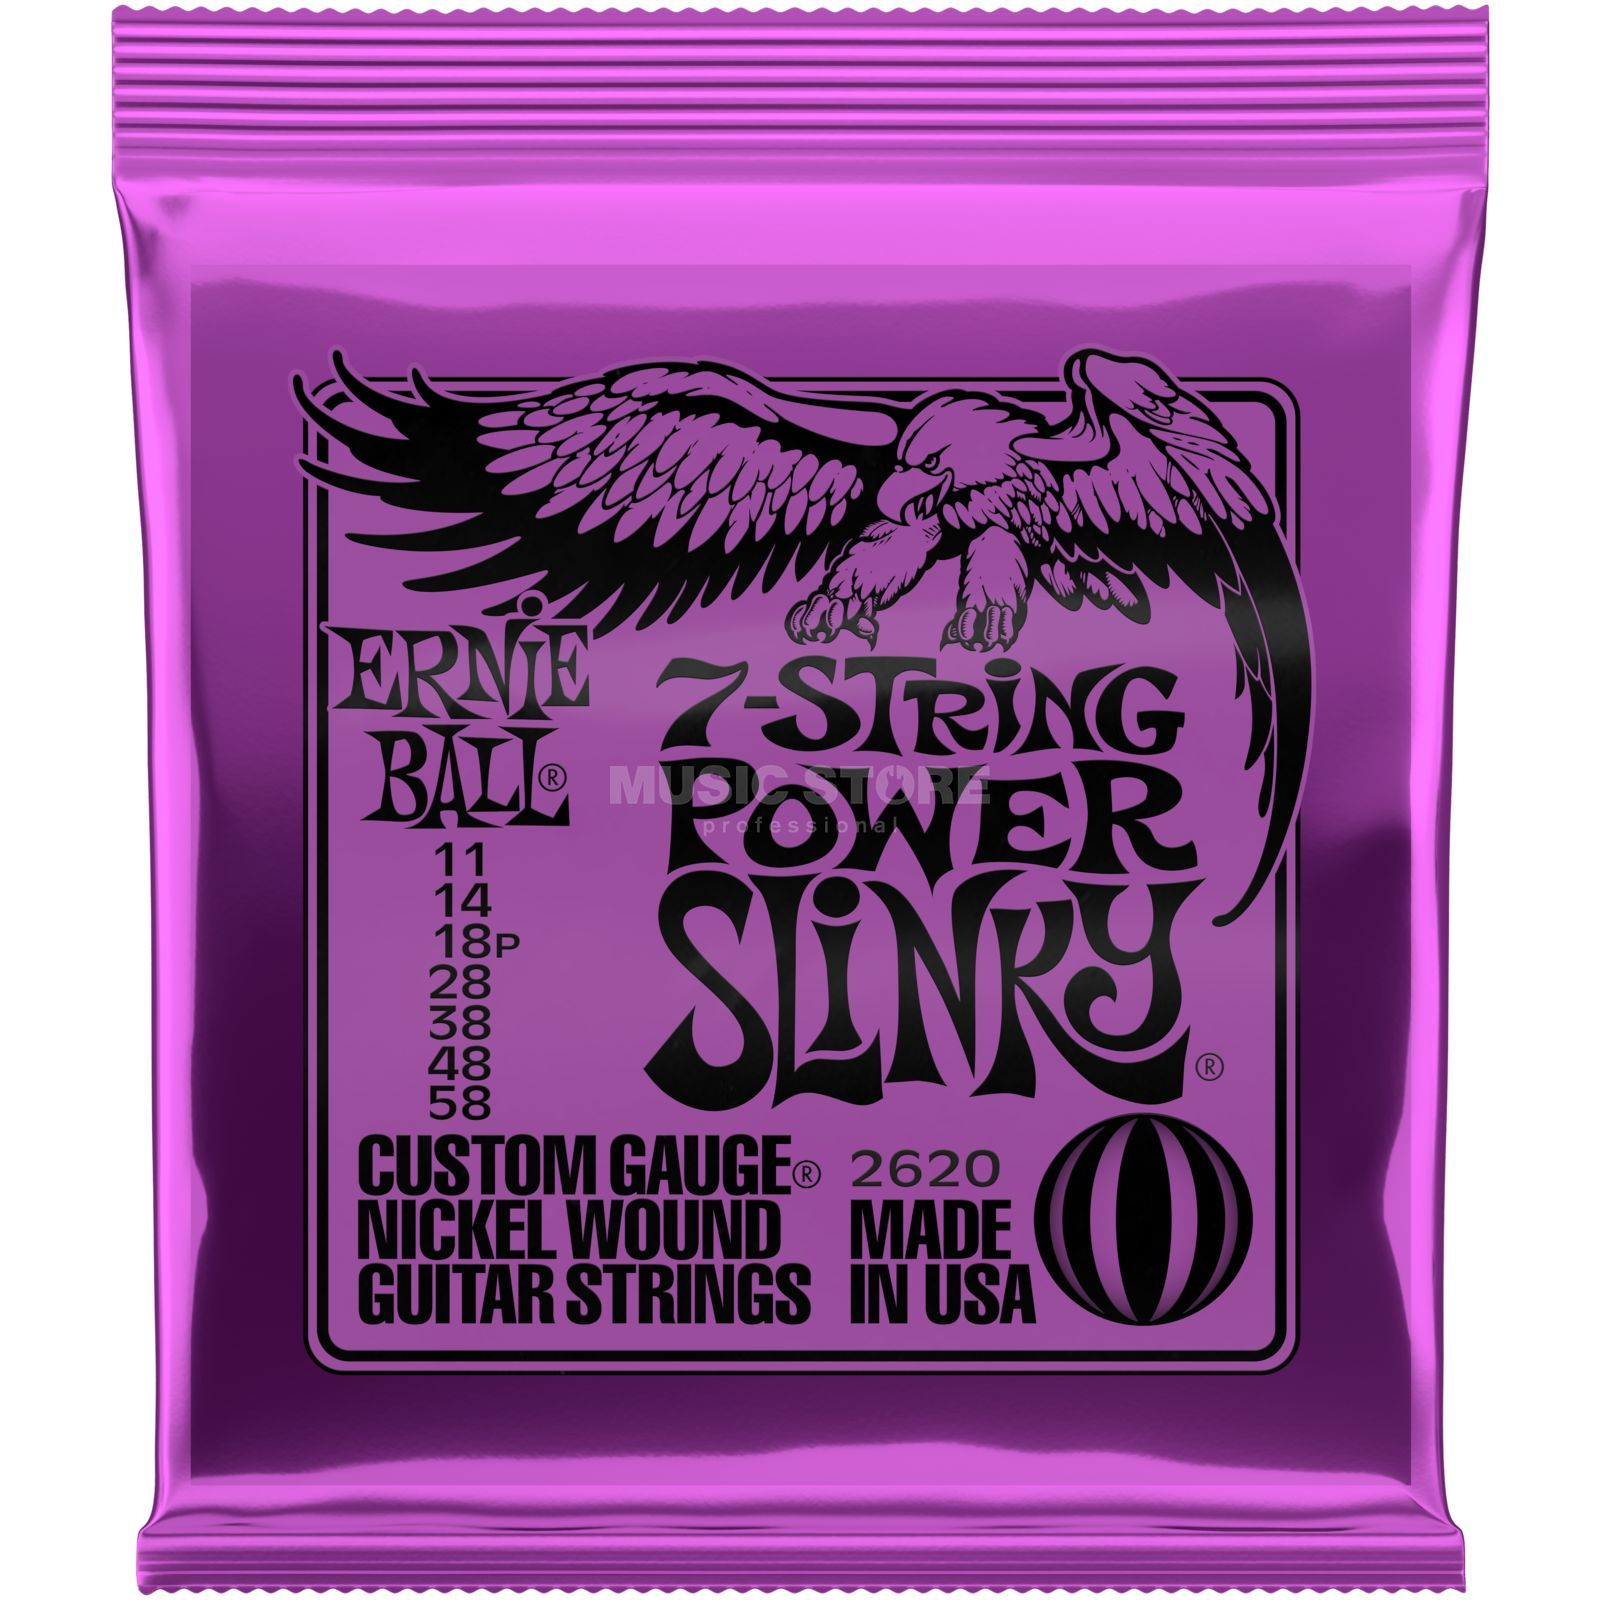 Ernie Ball EB2620 11-58 7-string Power Slinky Nickel Plated Produktbild